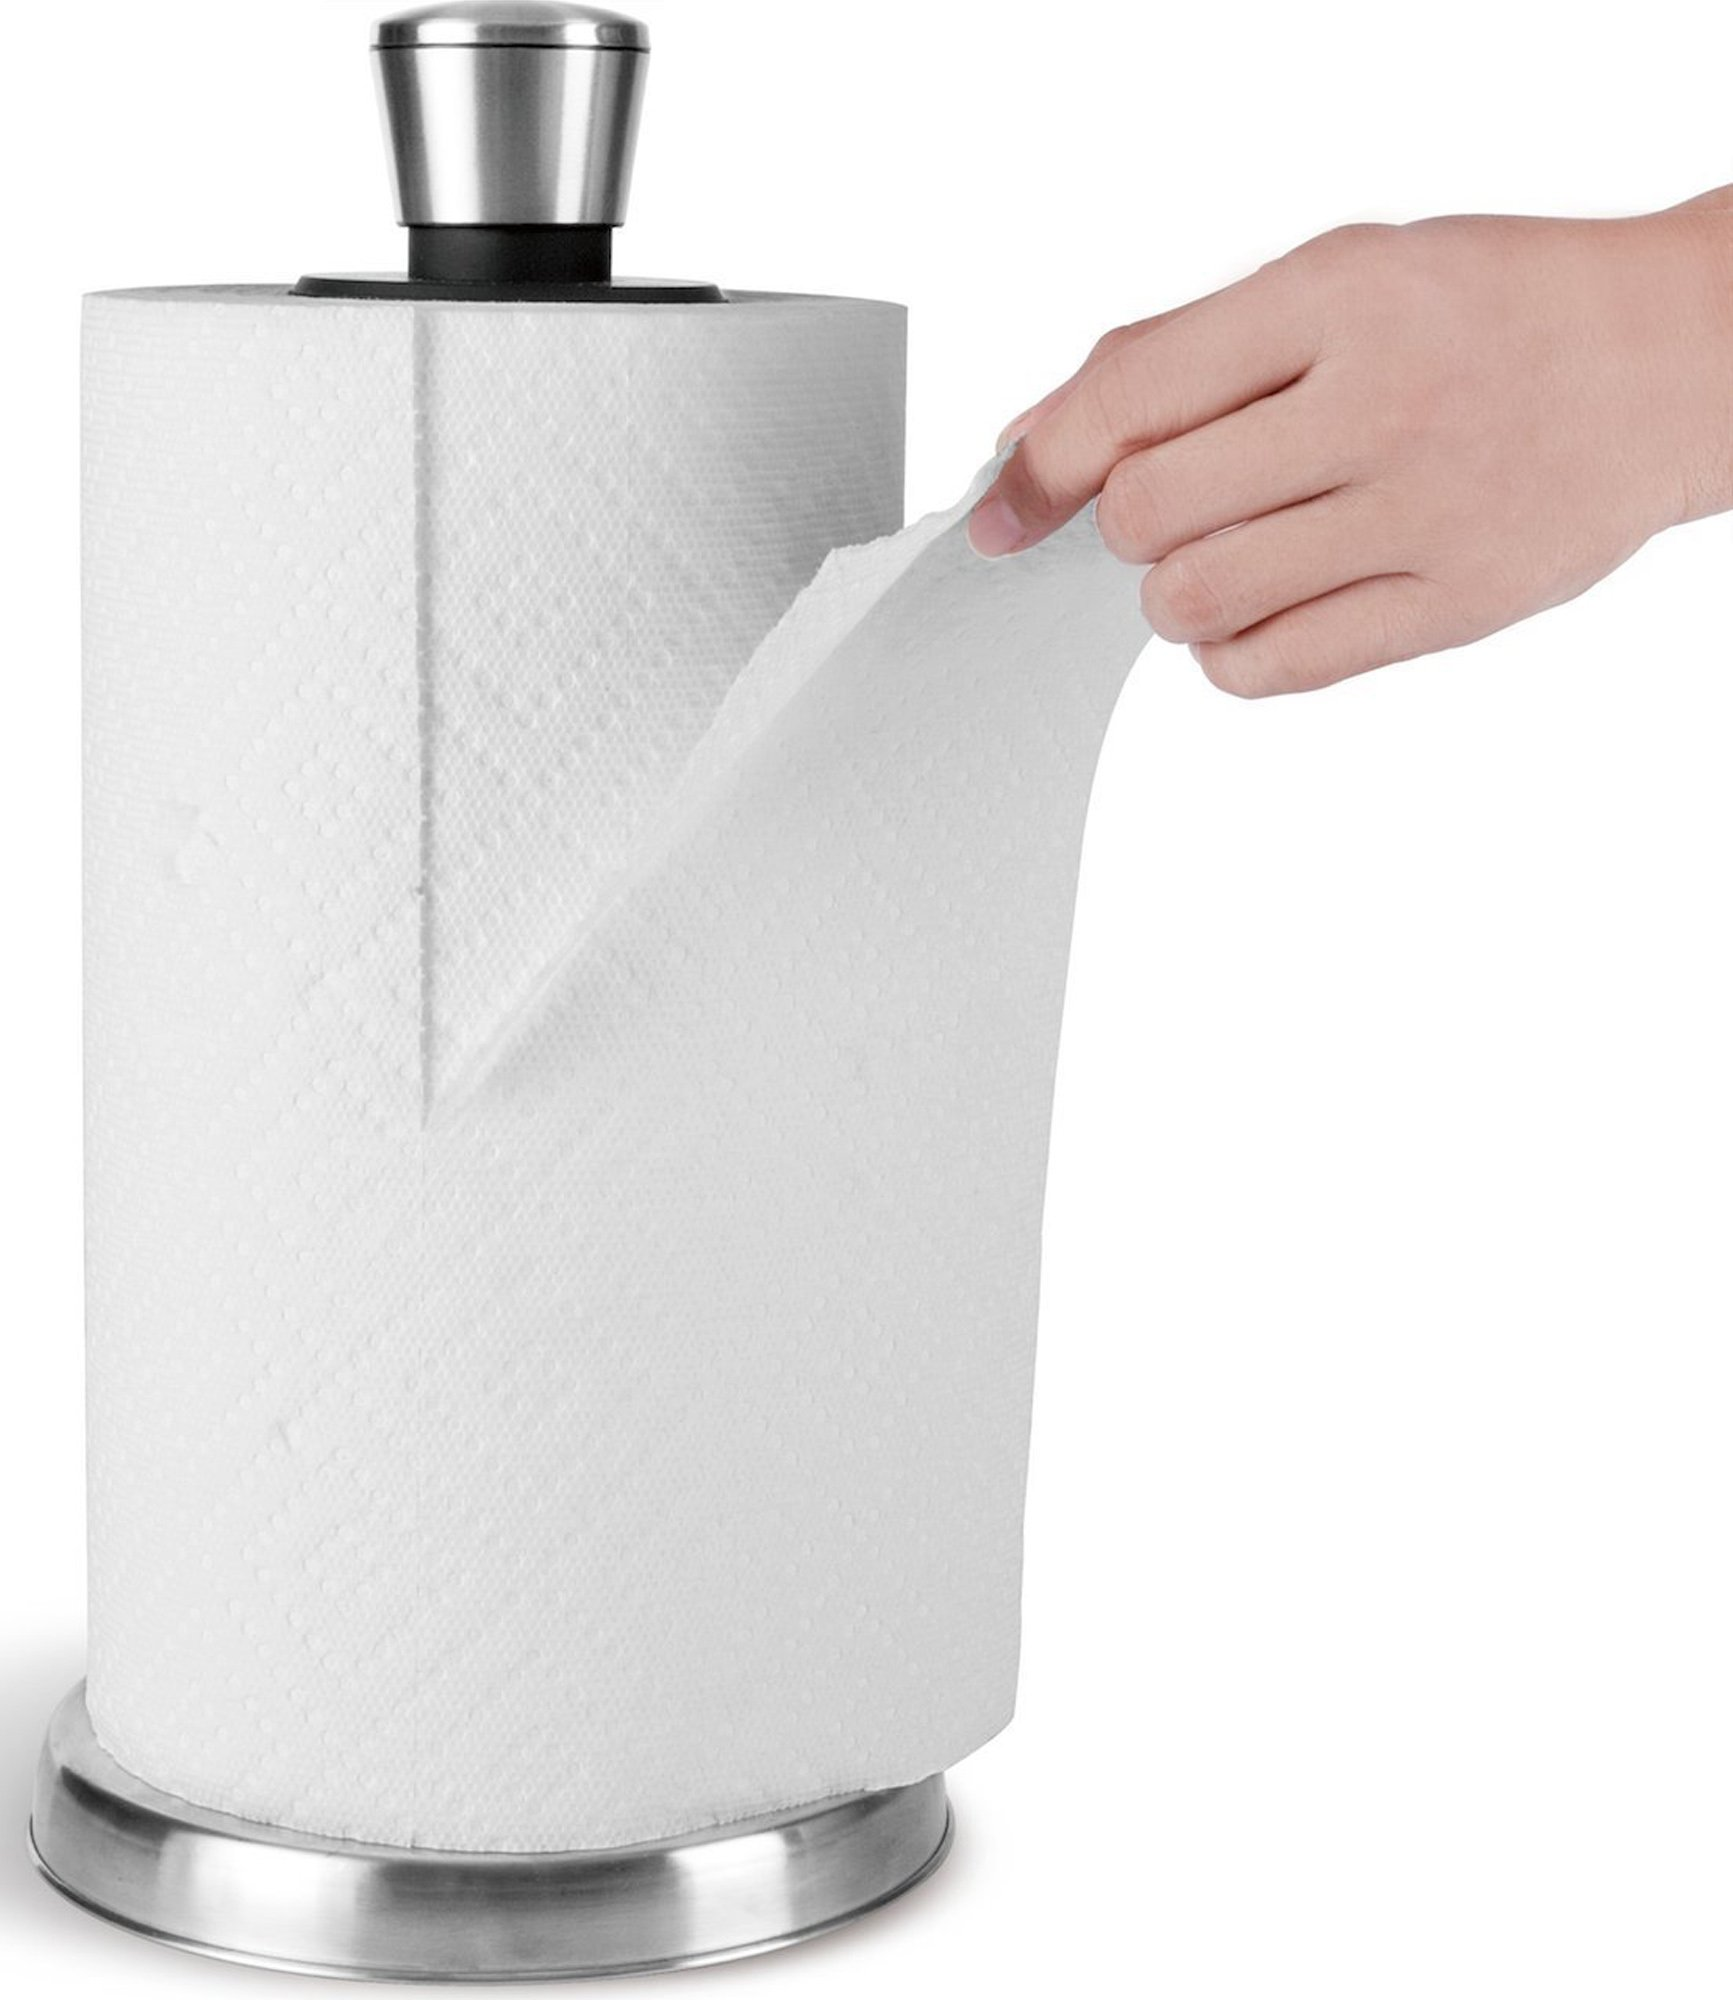 Paper Towel Holder by Royal - Easy Tear with One Hand - Stainless Steel Paper Towel Dispenser with Weighted Base - Paper Towel Rack Holds Bounty, Brawny, and All Brands